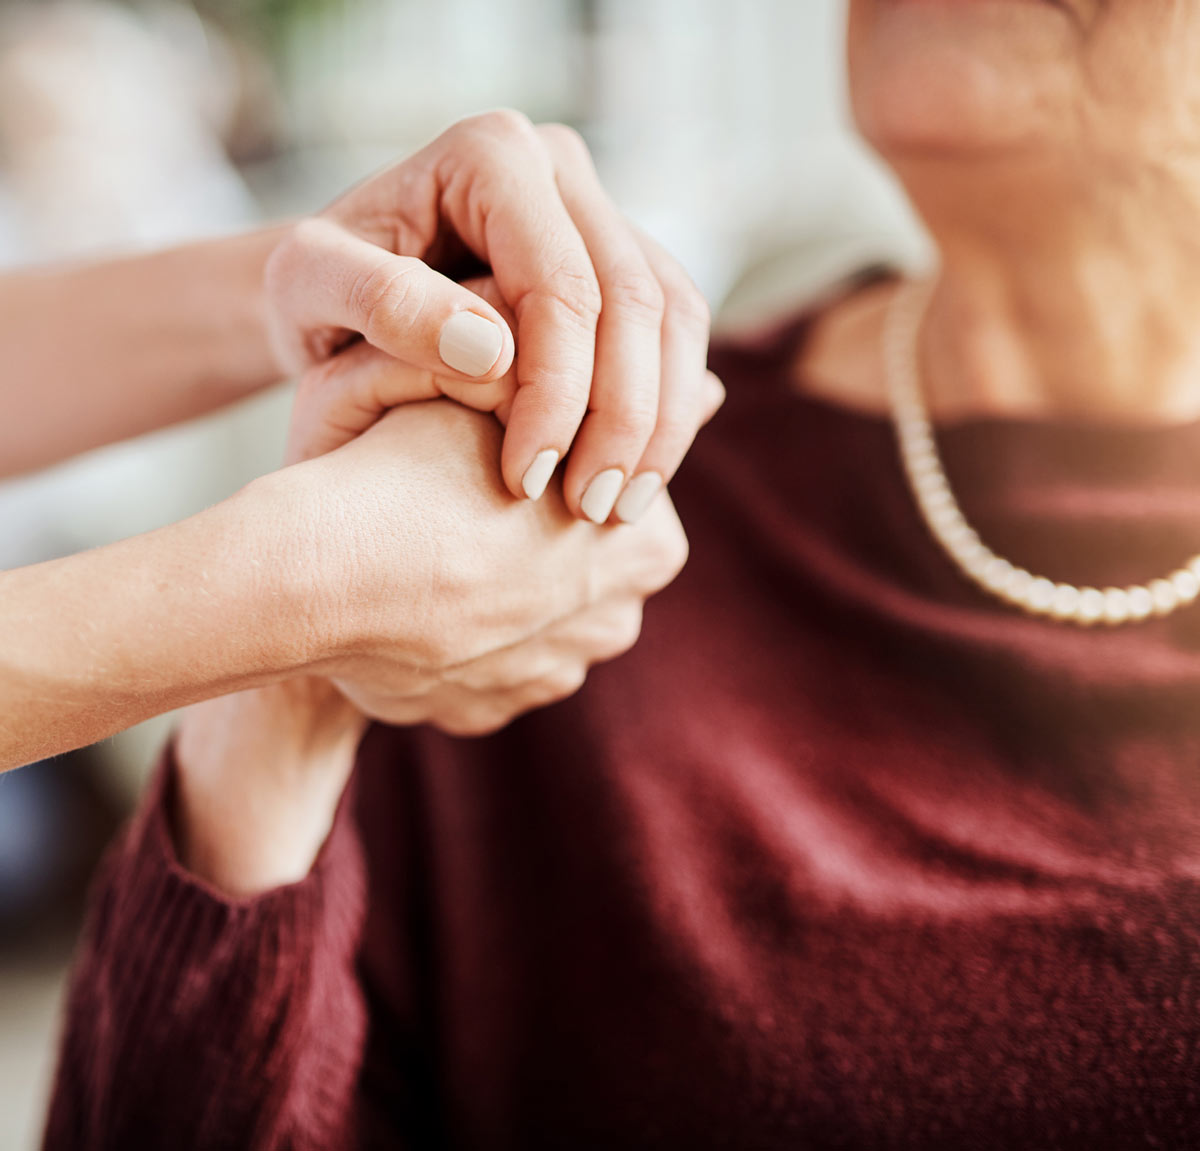 Holding Hands | Serenity Oaks Assisted Living & Memory Care, Respite Care in Live Oaks, San Antonio, Texas